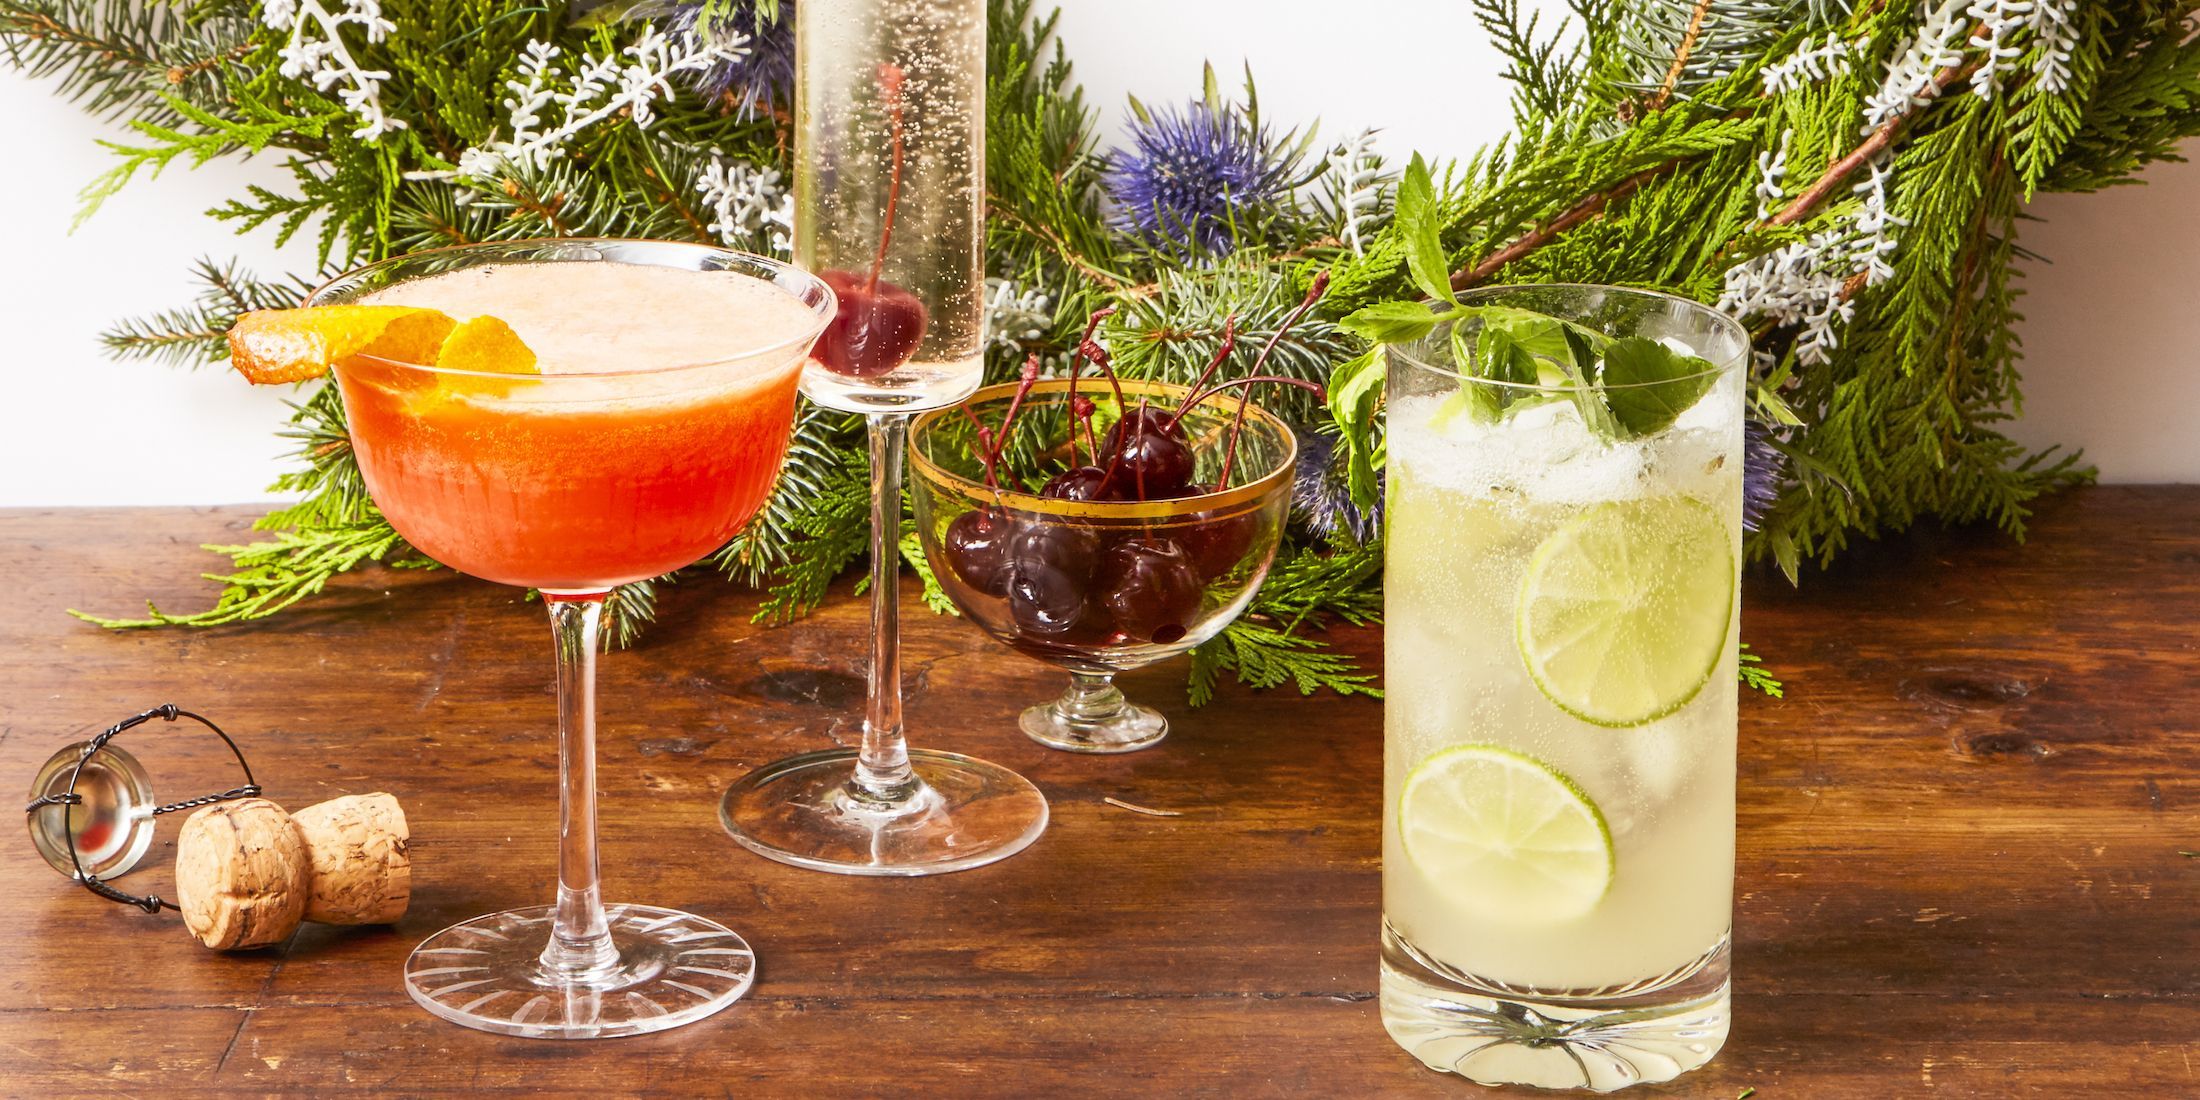 40 Easy Christmas Cocktails - Recipes for Holiday Alcoholic Drinks